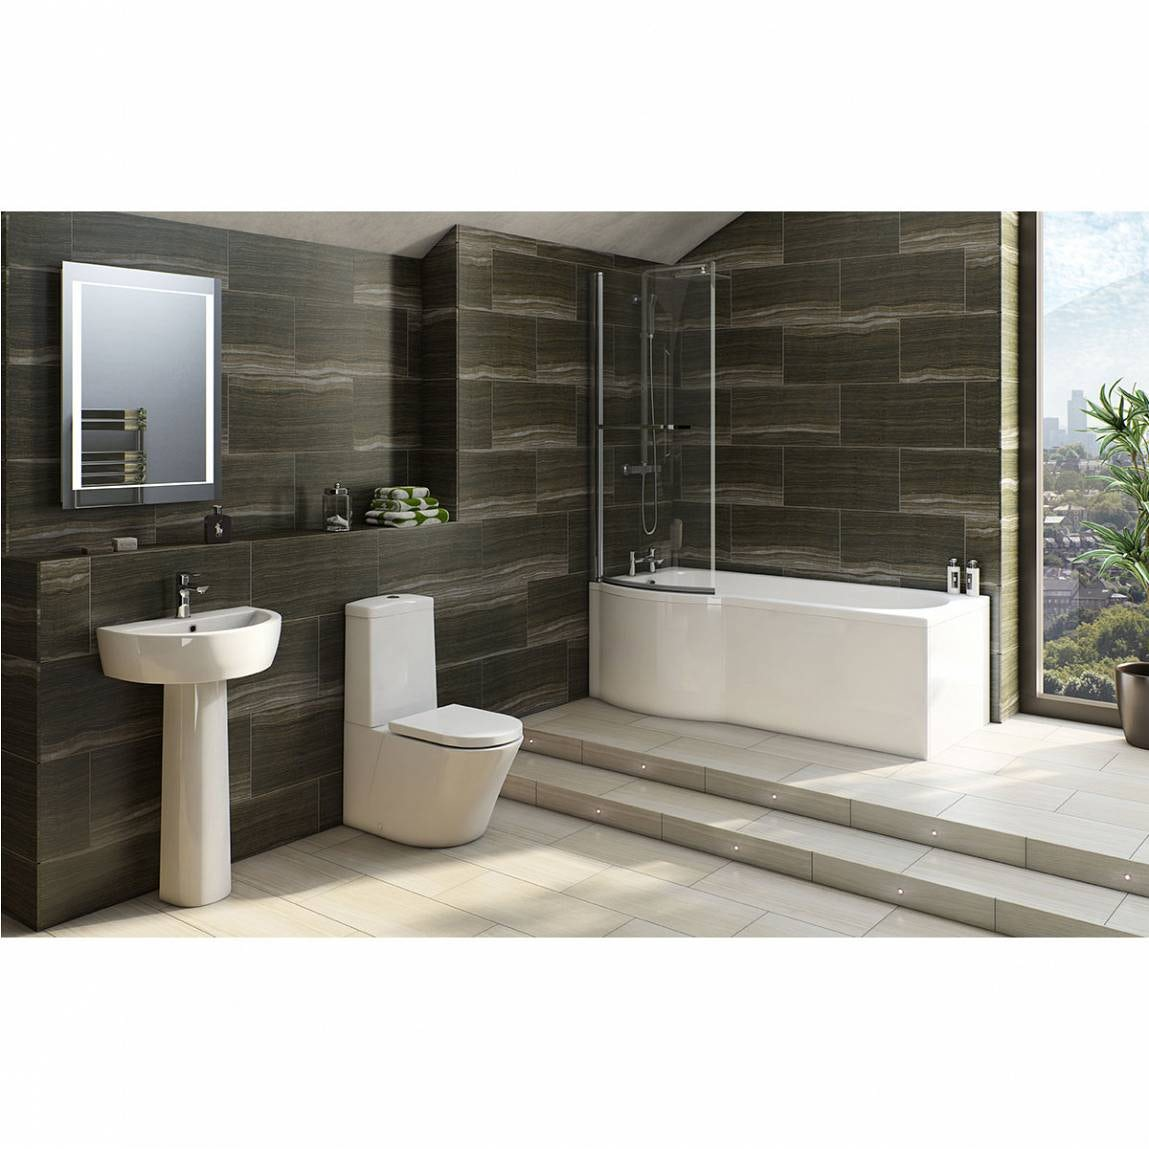 Mode Tate bathroom suite with left handed P shaped shower bath 1675 x 850